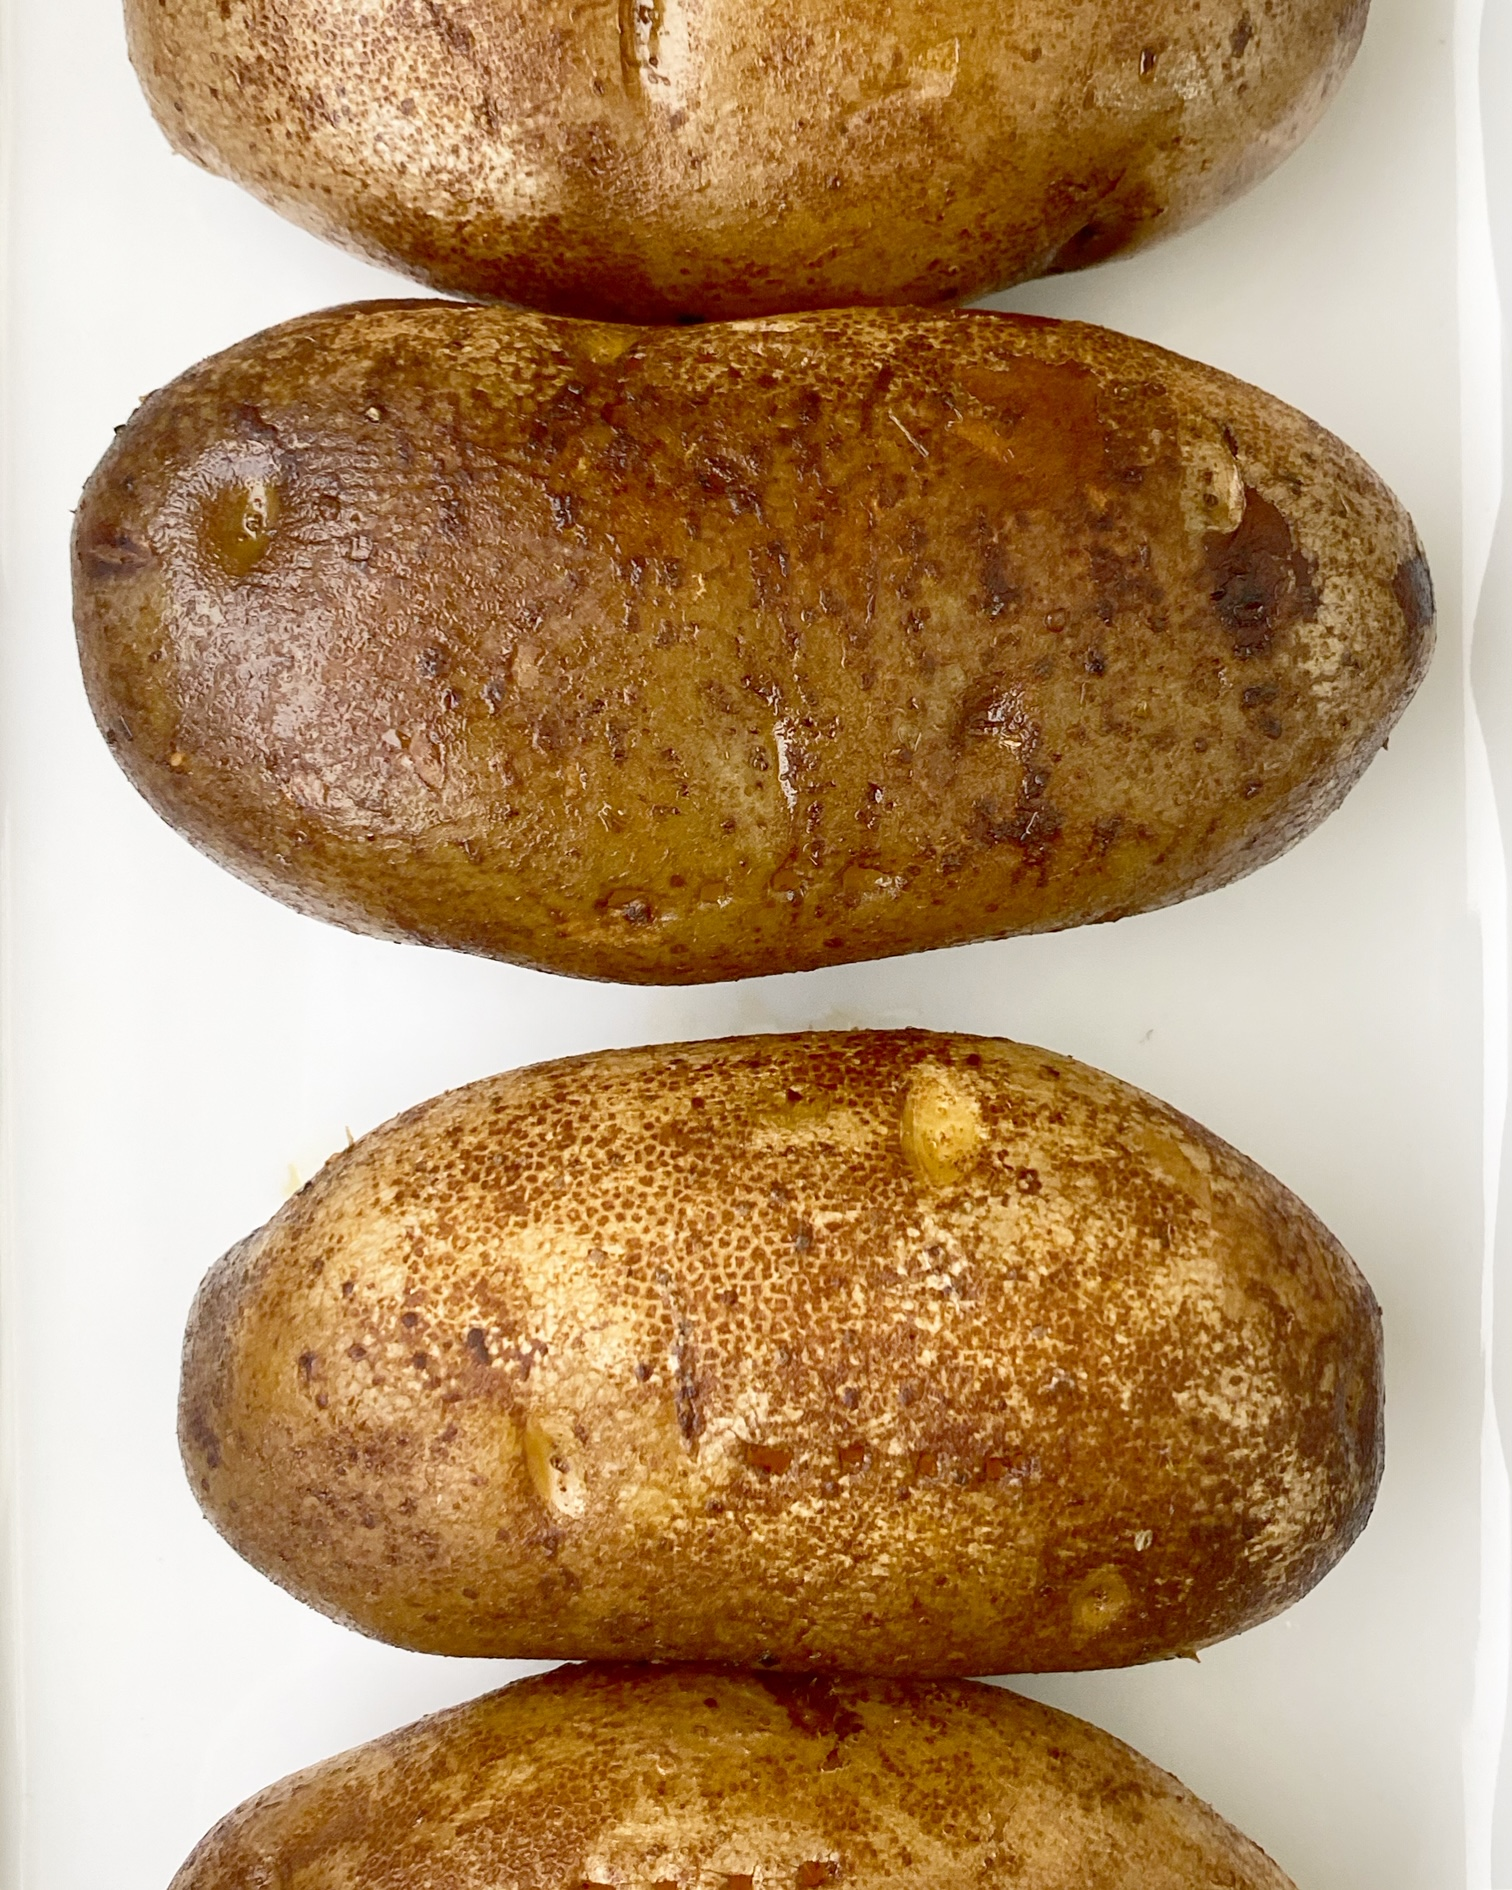 cooked, baked potatoes on a white plate